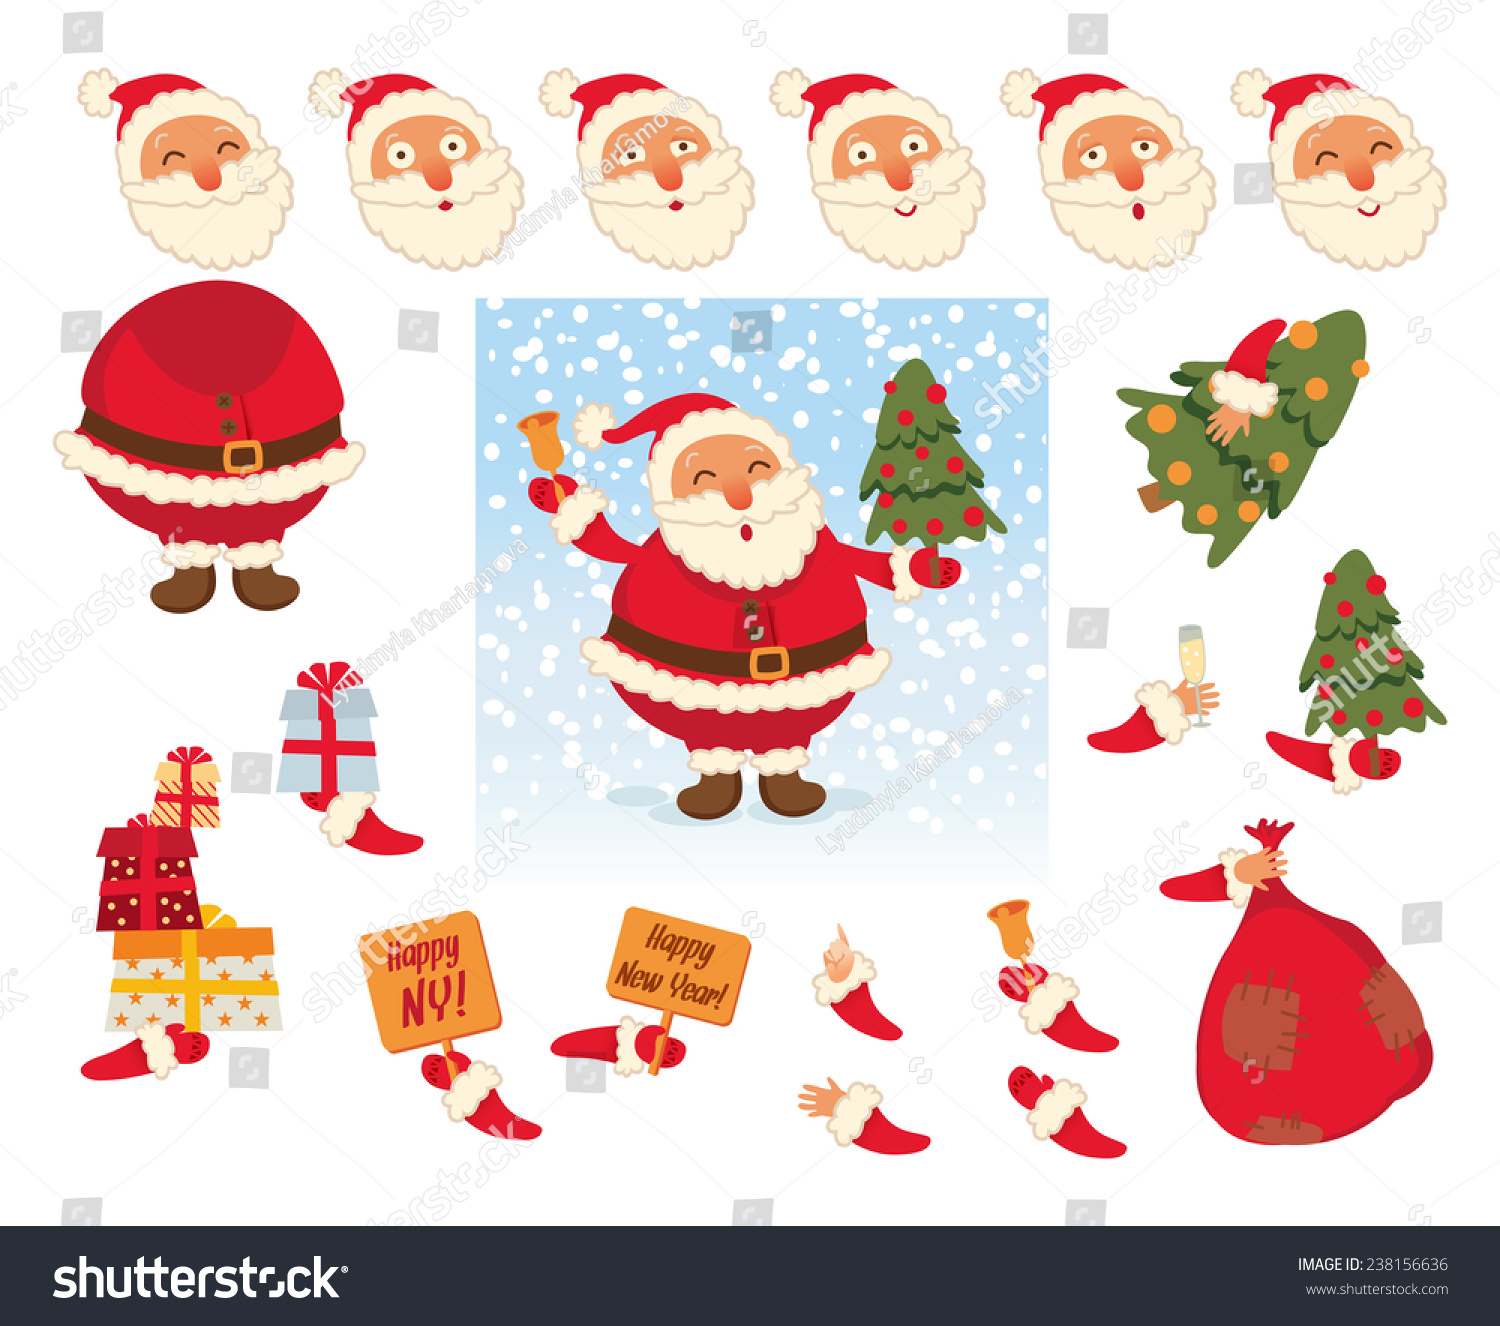 Santa Claus Parts Body Template Design Stock Vector Royalty Free